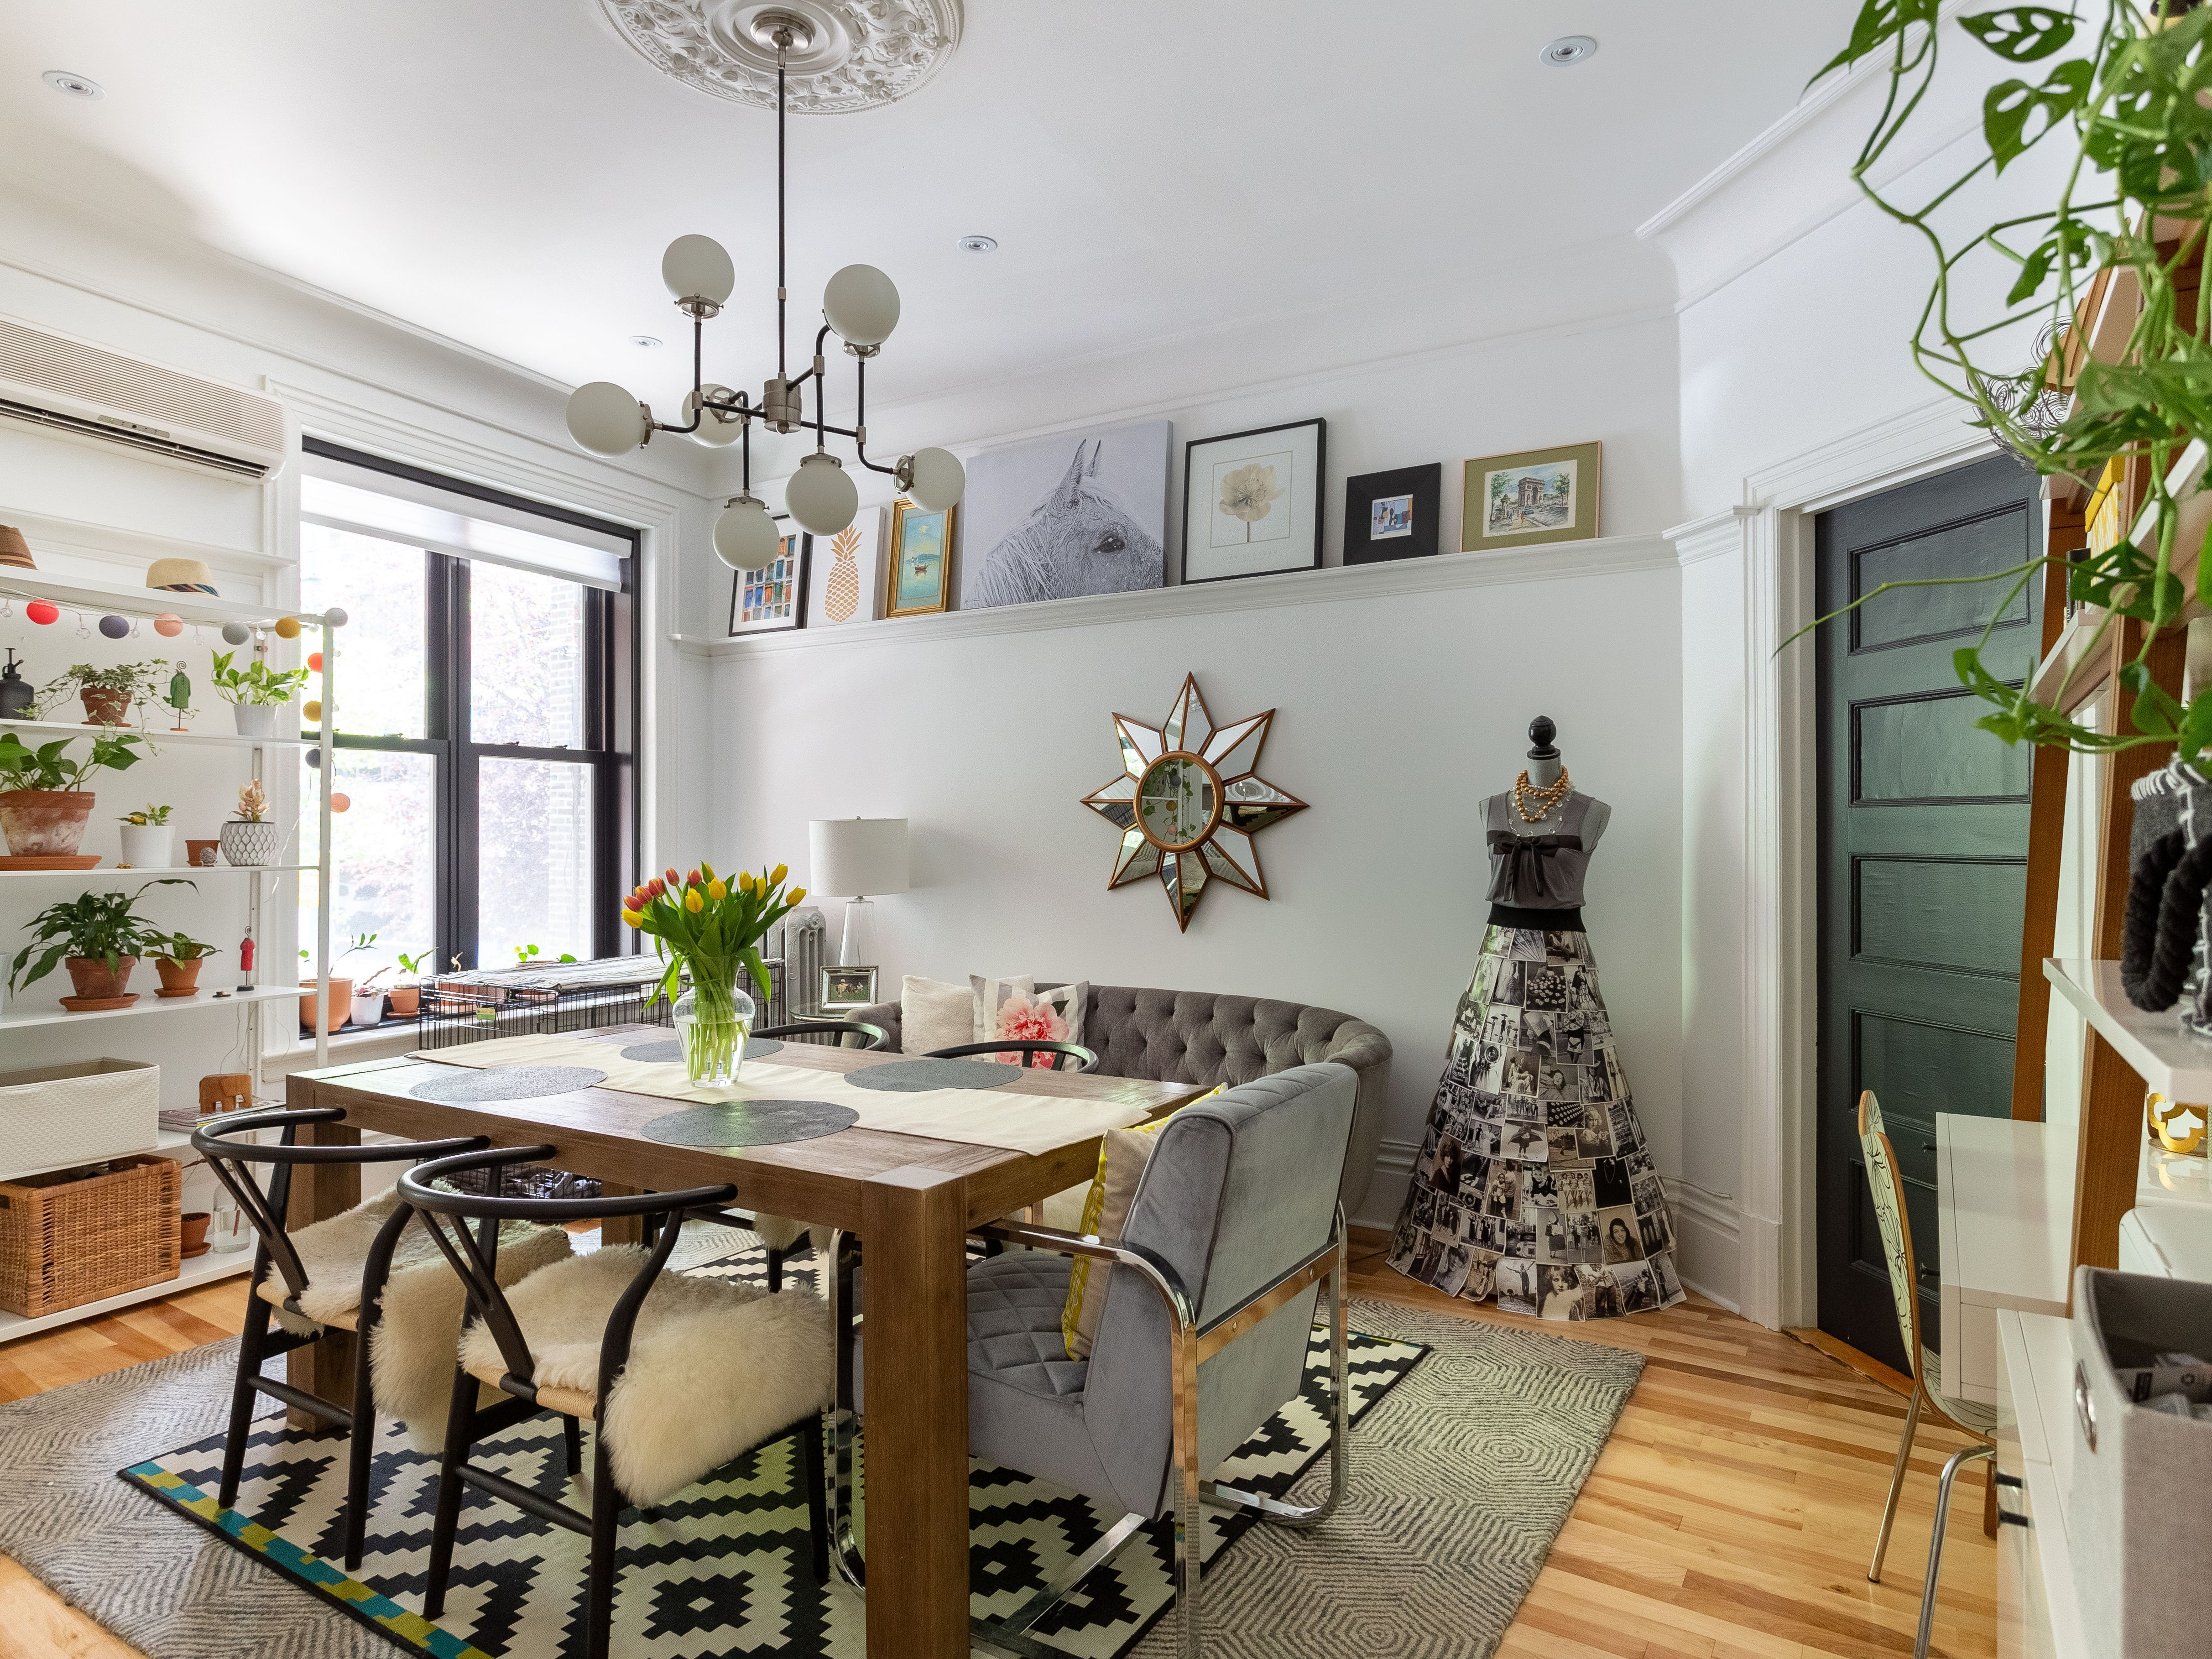 20's Hottest Design Trends According to Experts